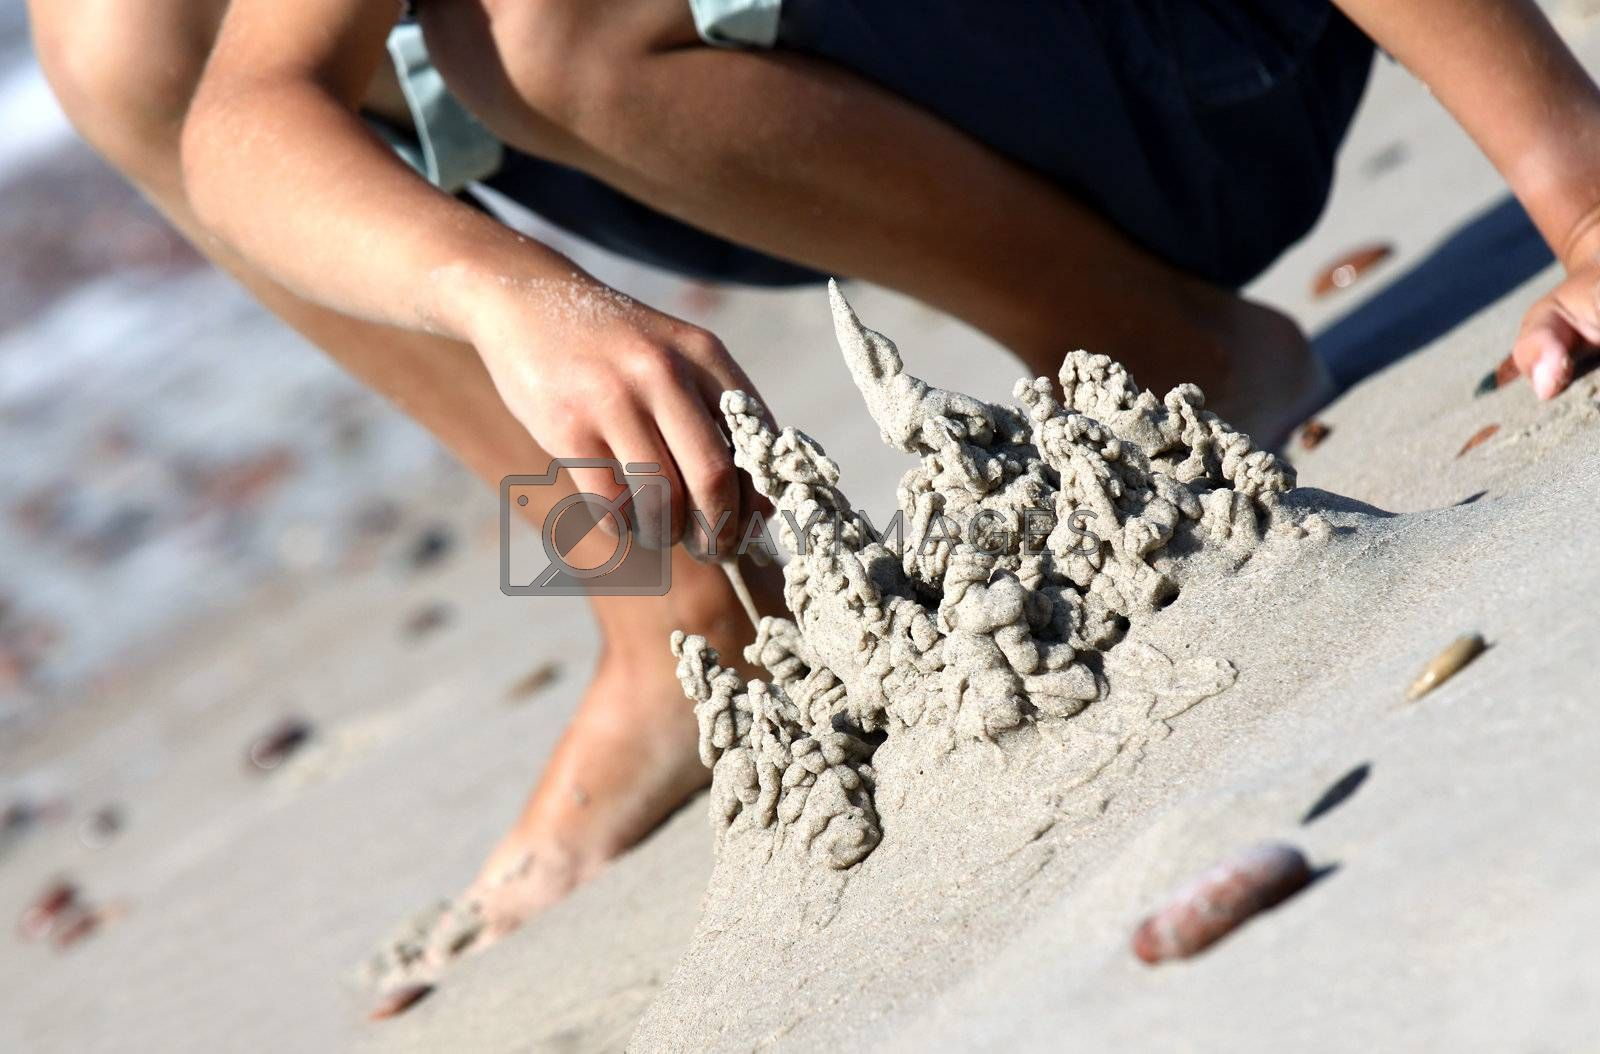 Picture of a boy hand building sand castle on the beach